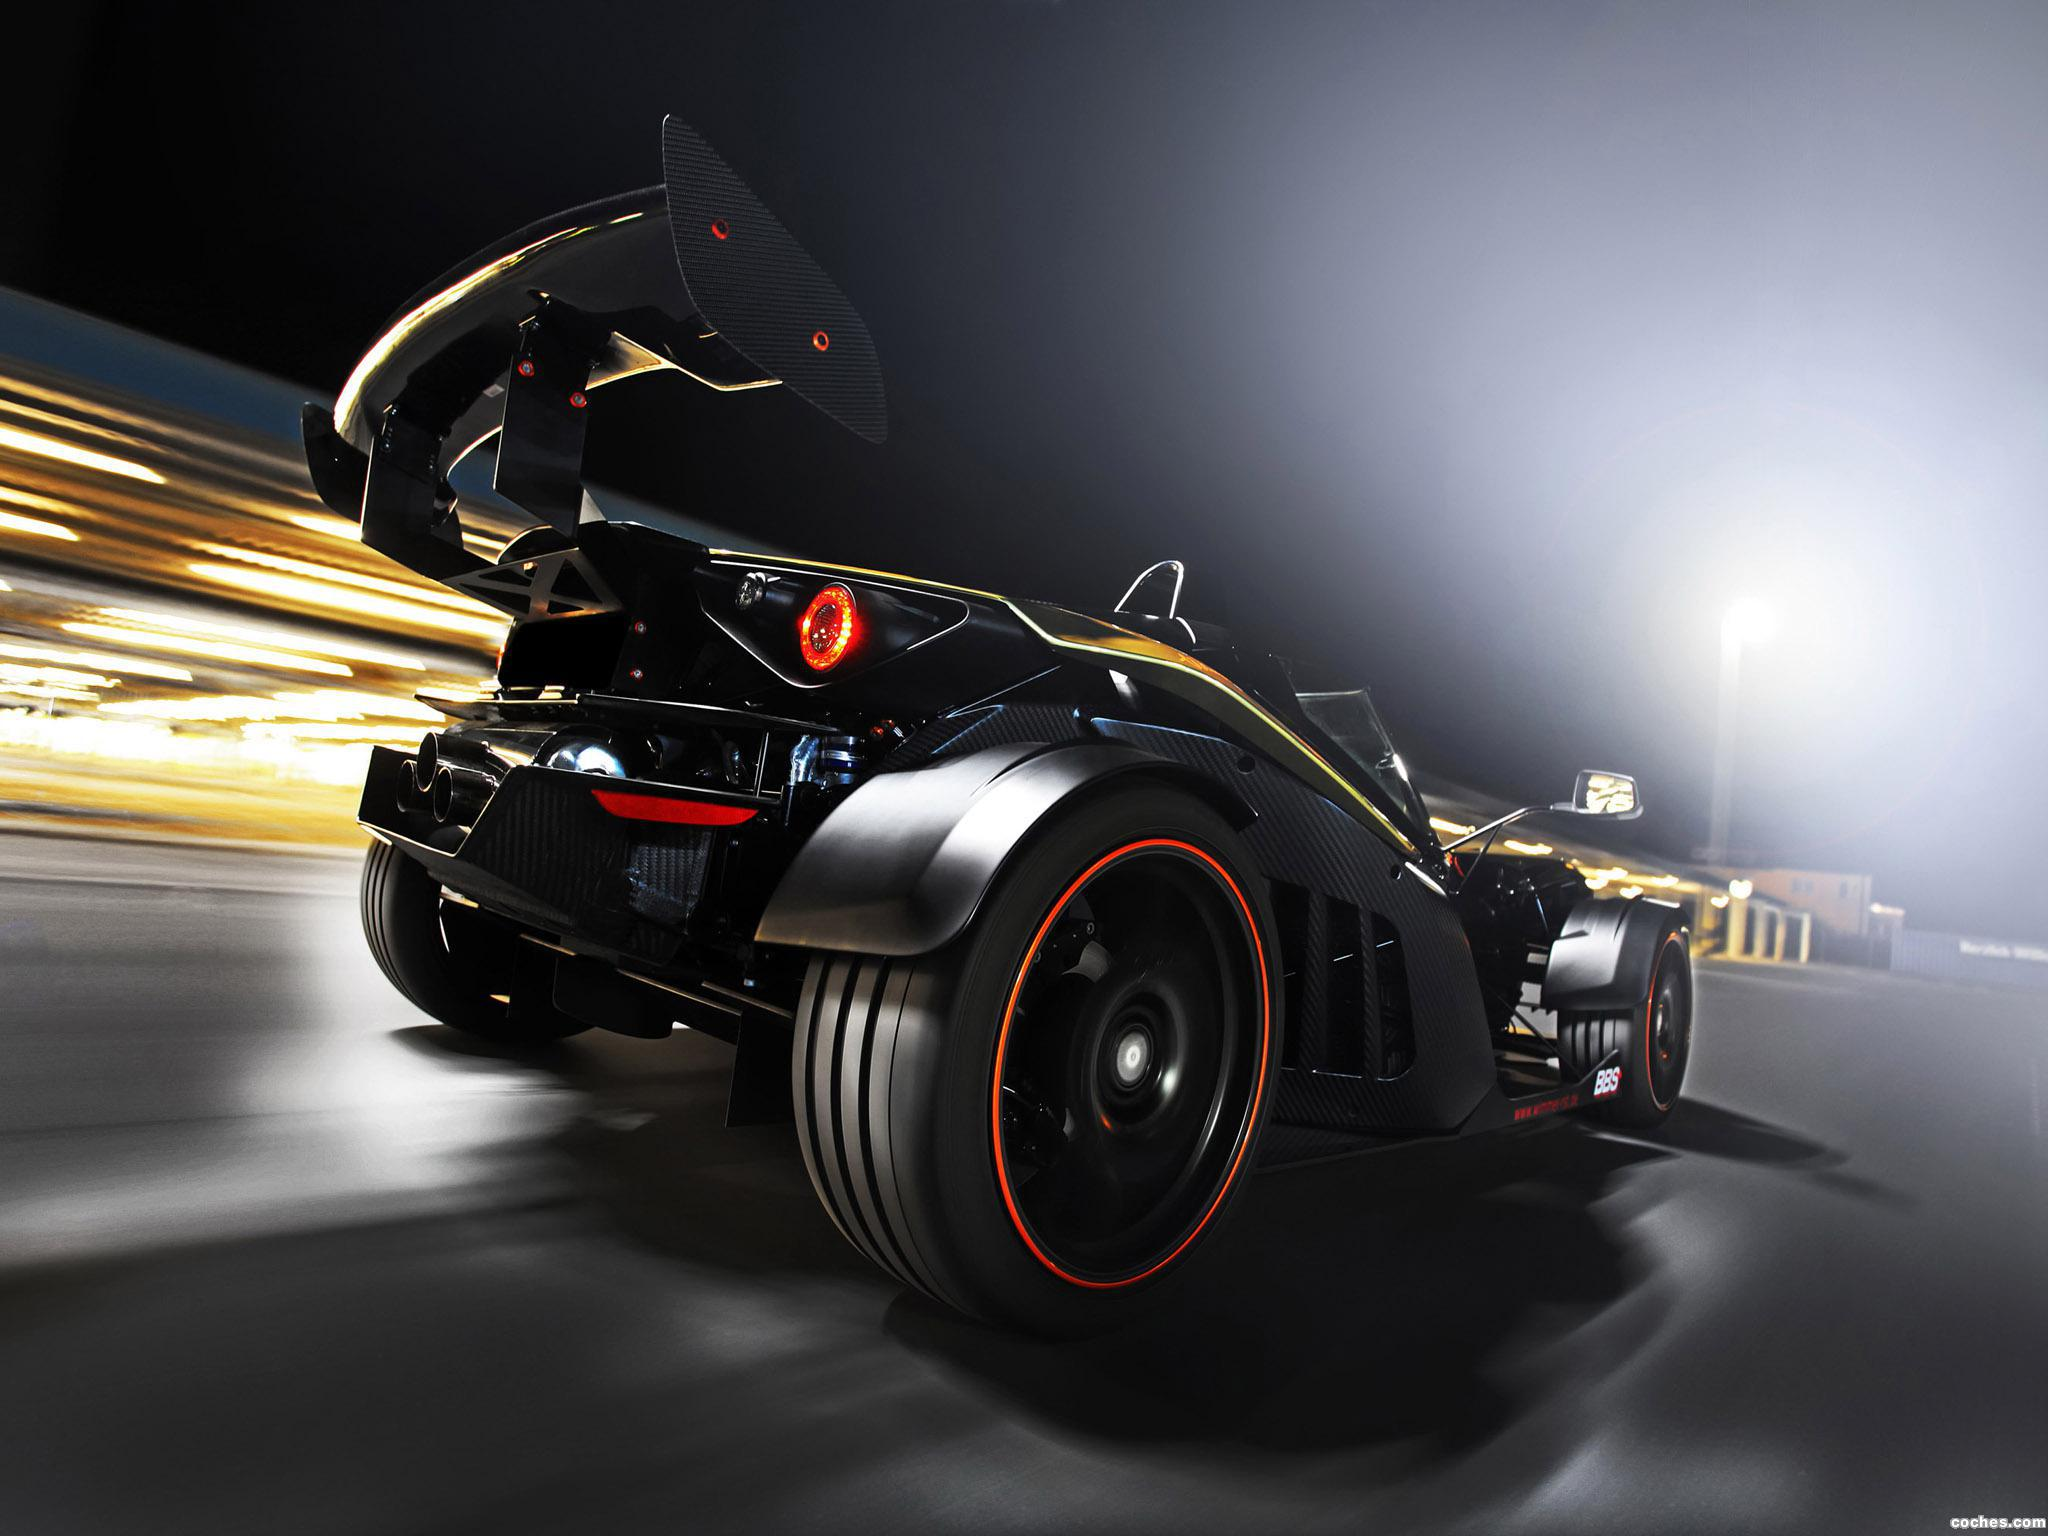 Foto 1 de Wimmer RS KTM X-BOW Gold Edition 2015